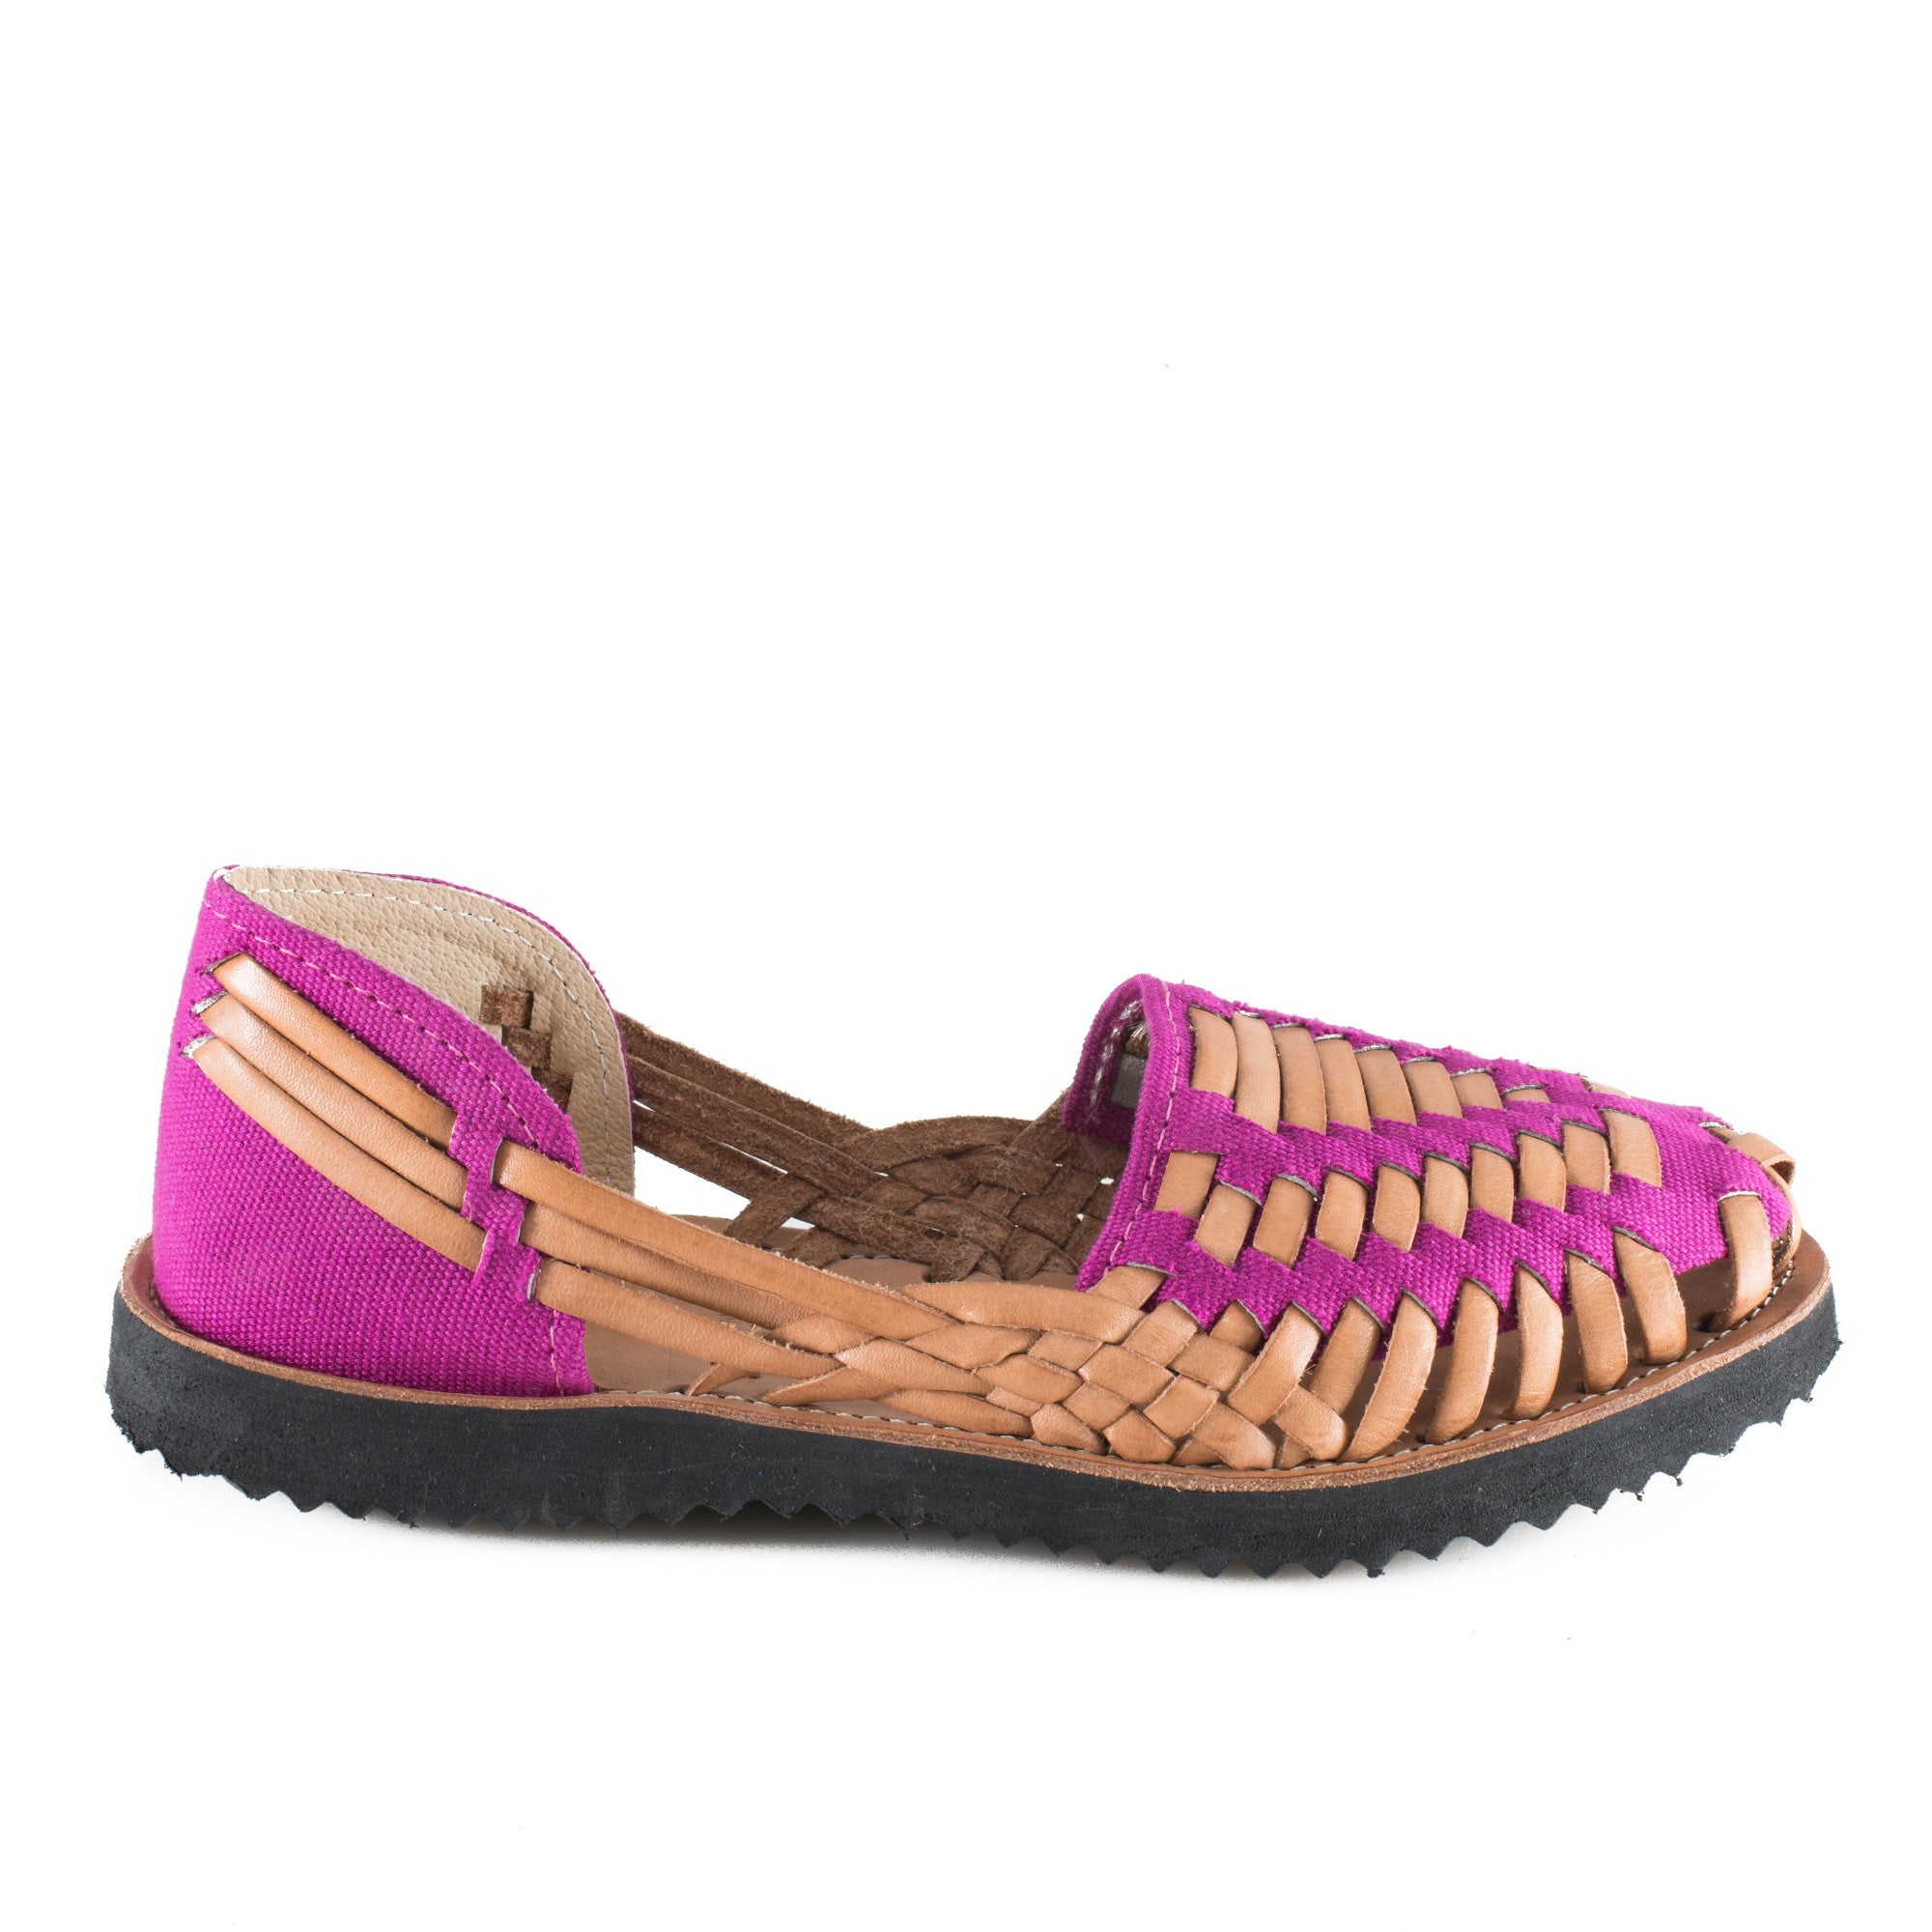 Women's Magenta Huarache Woven Leather Sandal - Ix Style - Water For Children